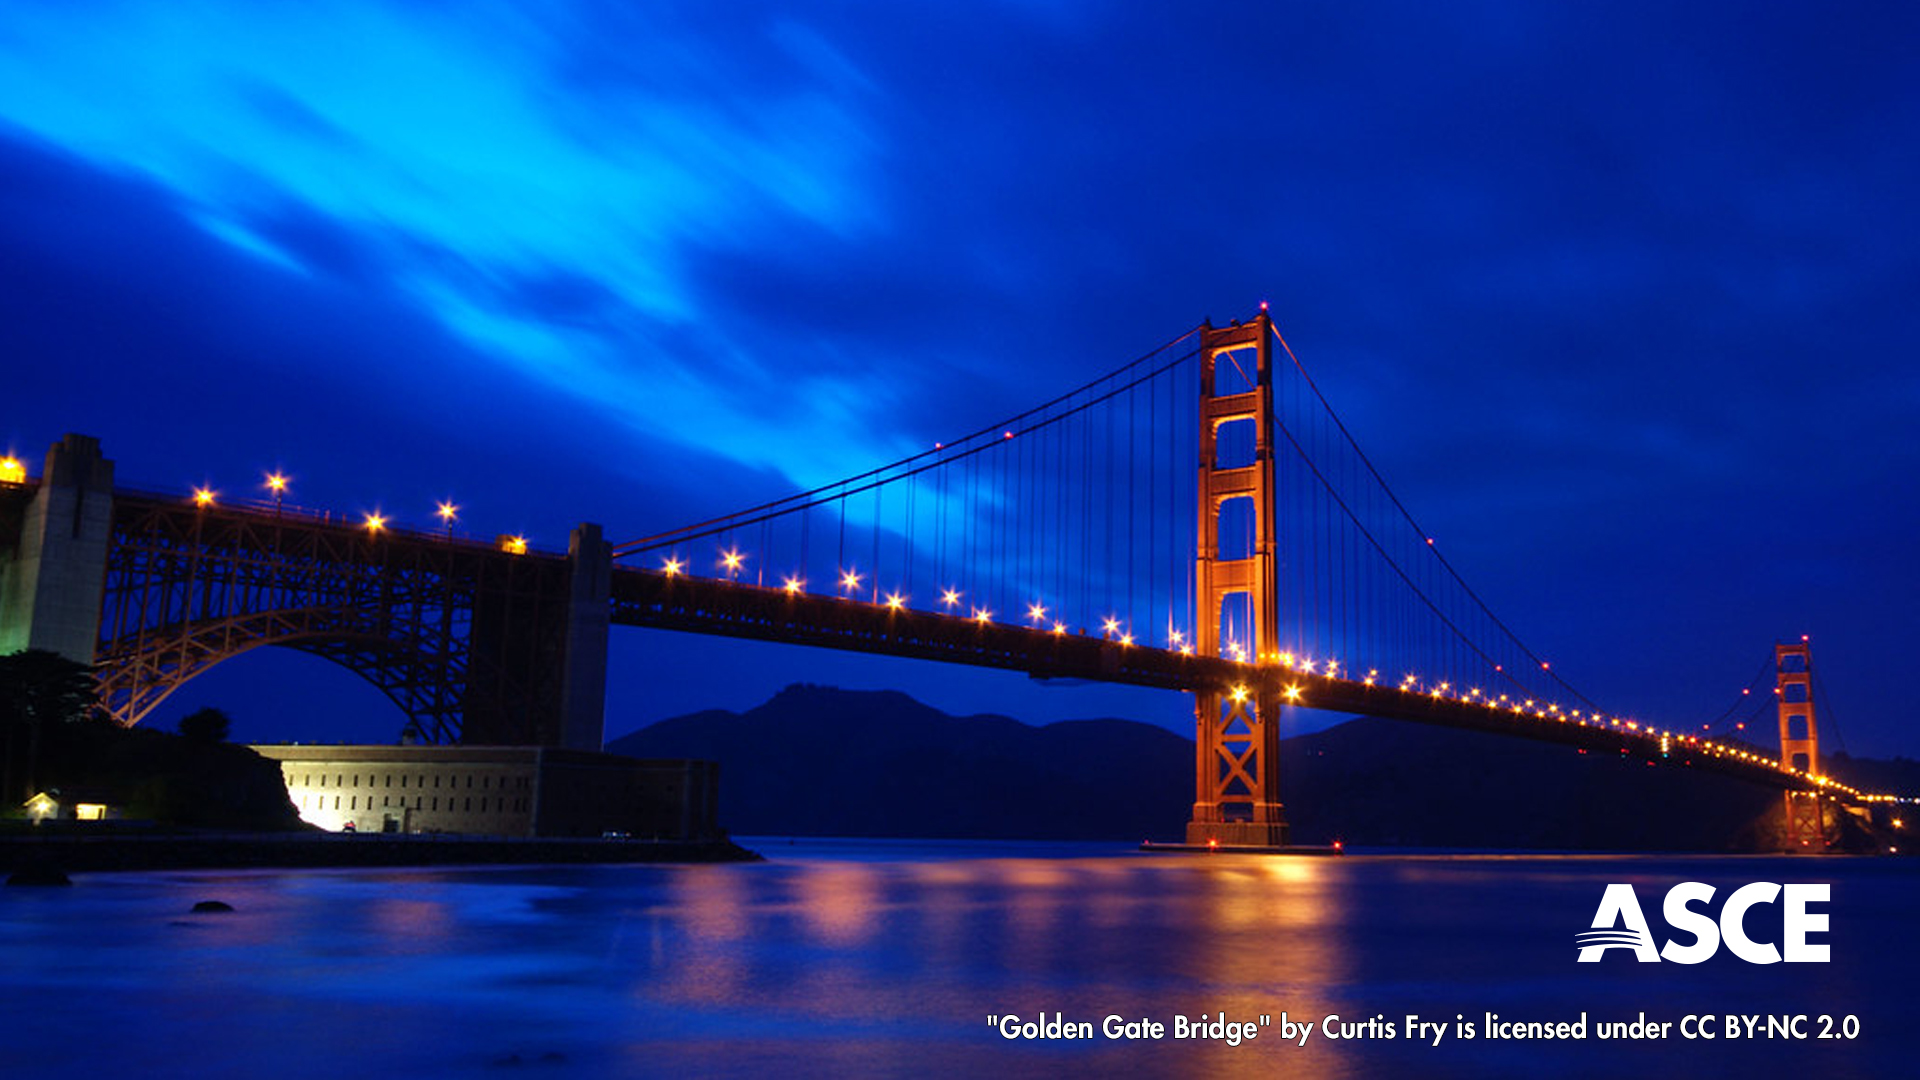 ASCE Golden Gate Bridge 1